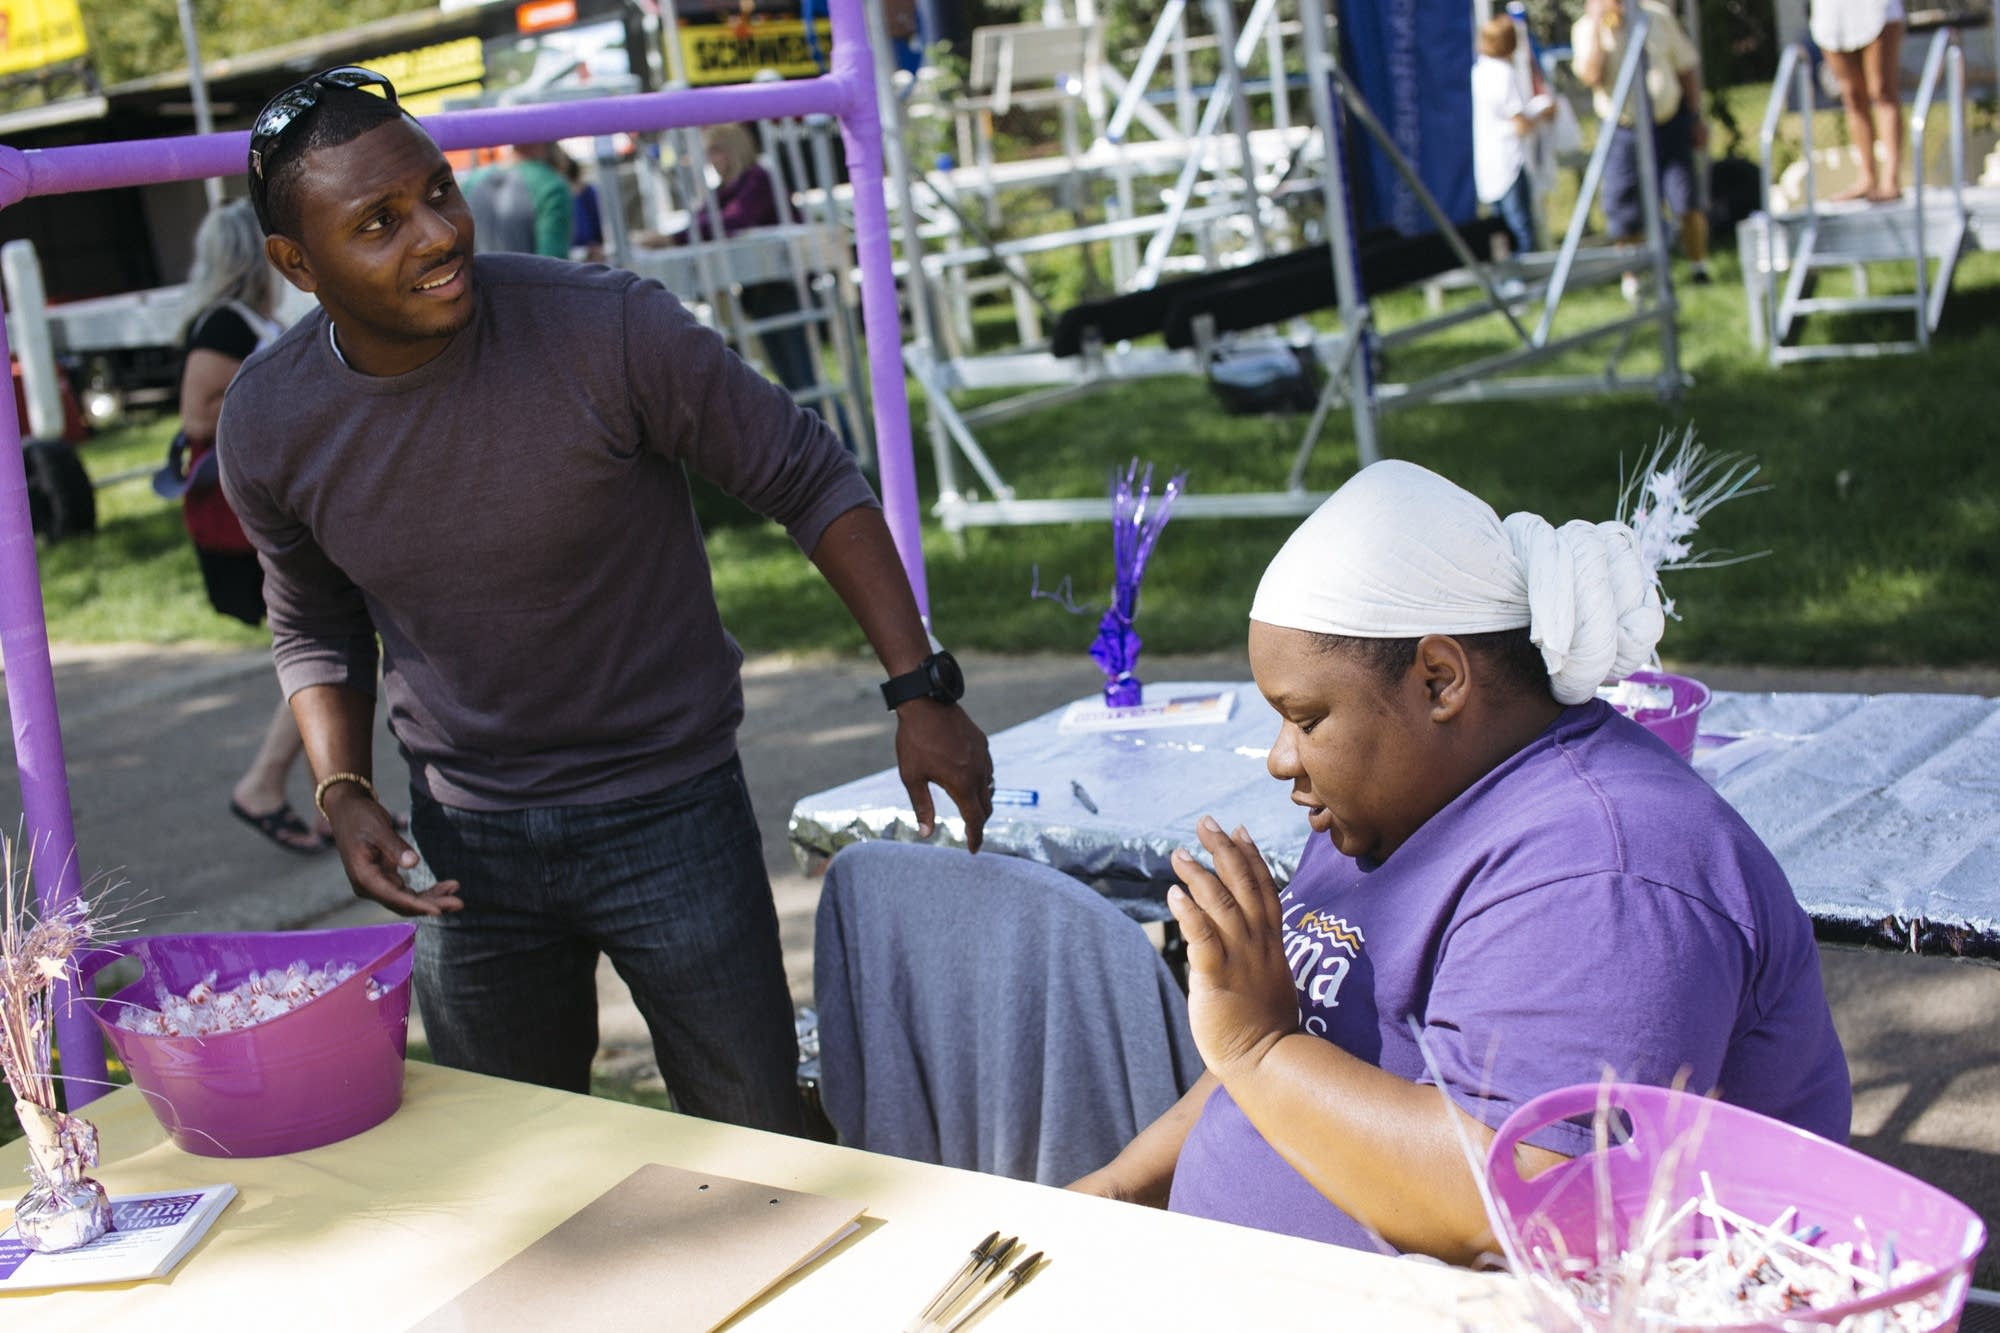 Elizer and Shaundelle Darris work a booth at the State Fair.